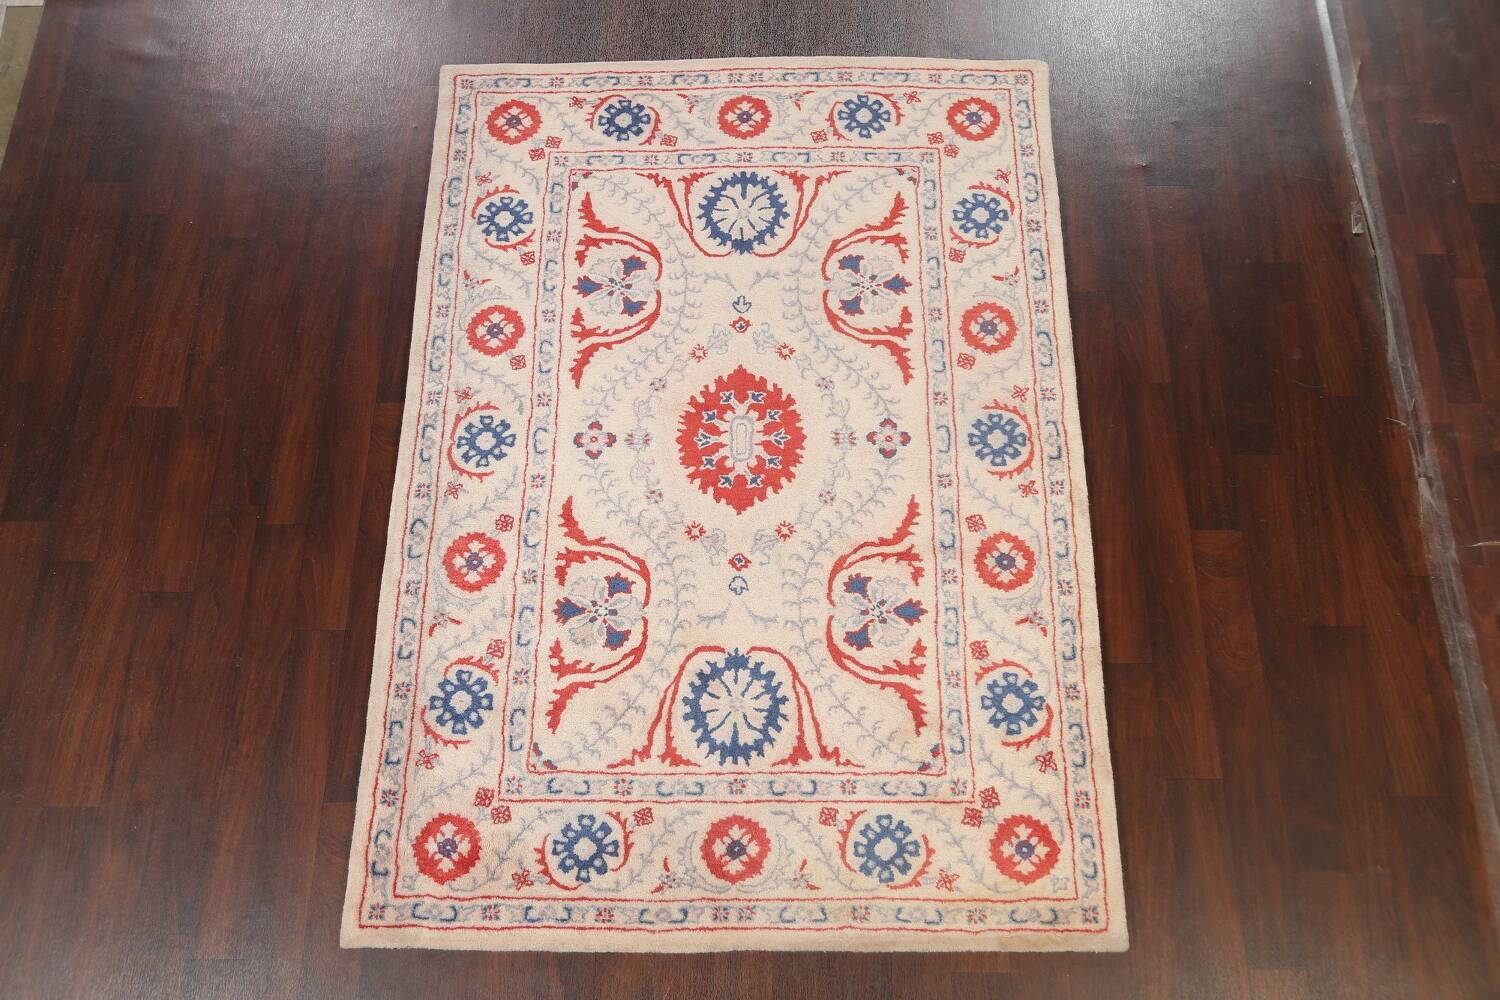 Hand-Tufted Floral Area Rug 6x8 image 2